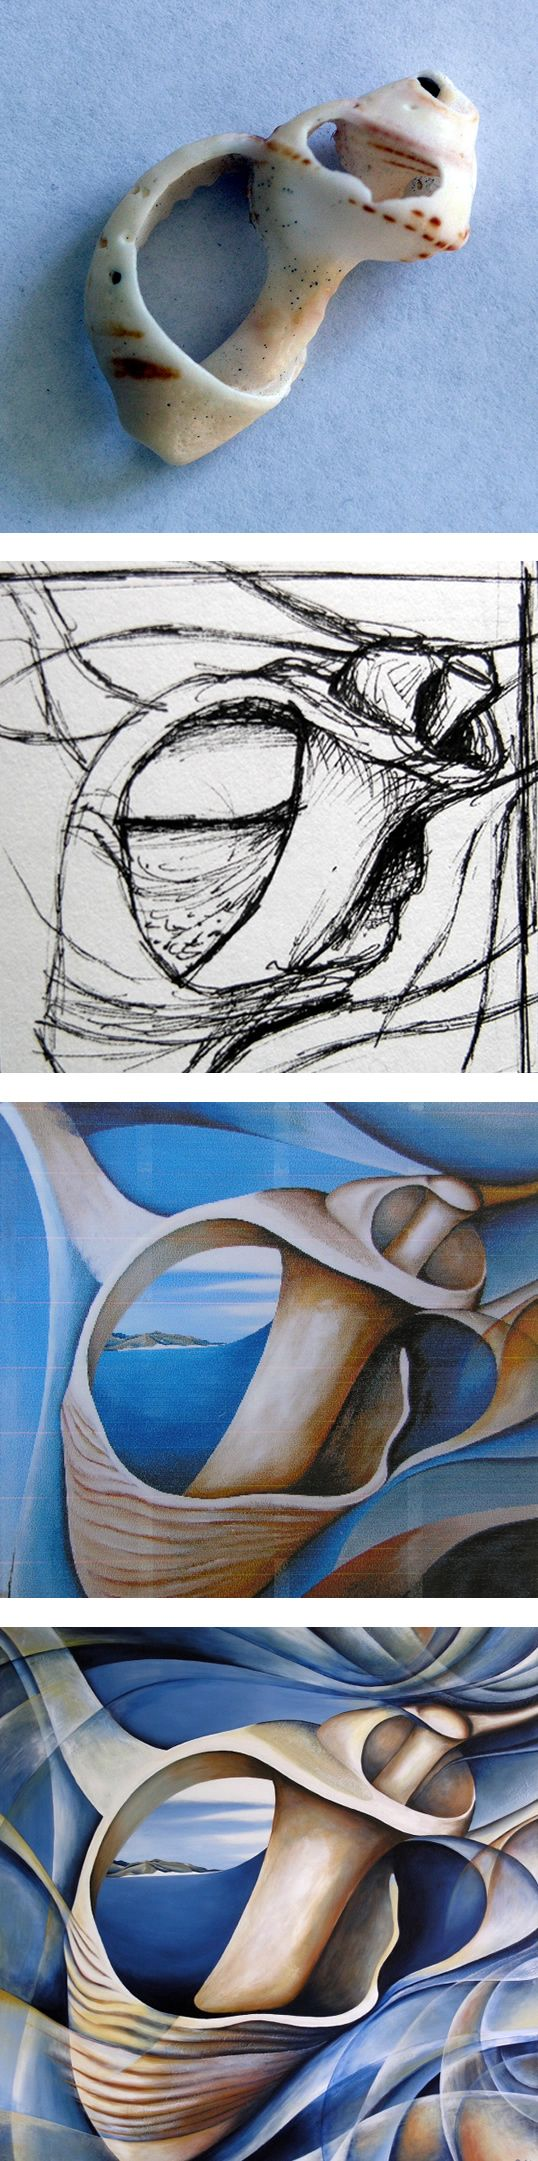 Four steps in a painting by New Zealand artist Amiria Gale